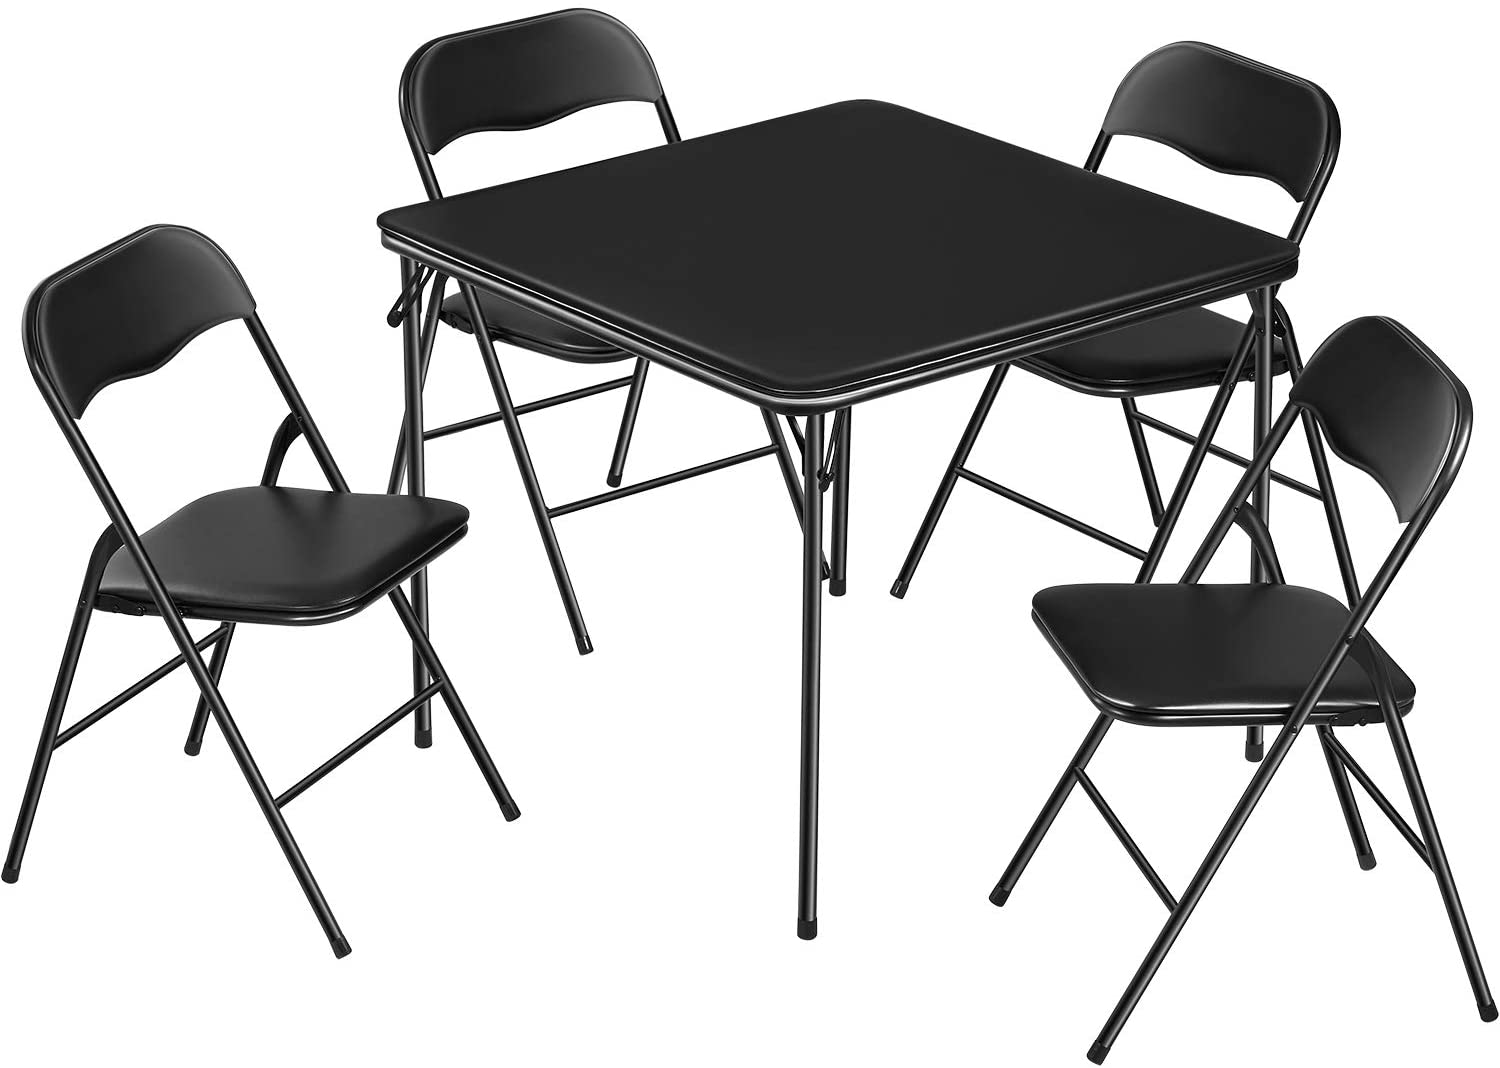 5-Piece Card Table and Chairs Set 4 for Folding Louisville-Jefferson County Mall Padded Max 52% OFF